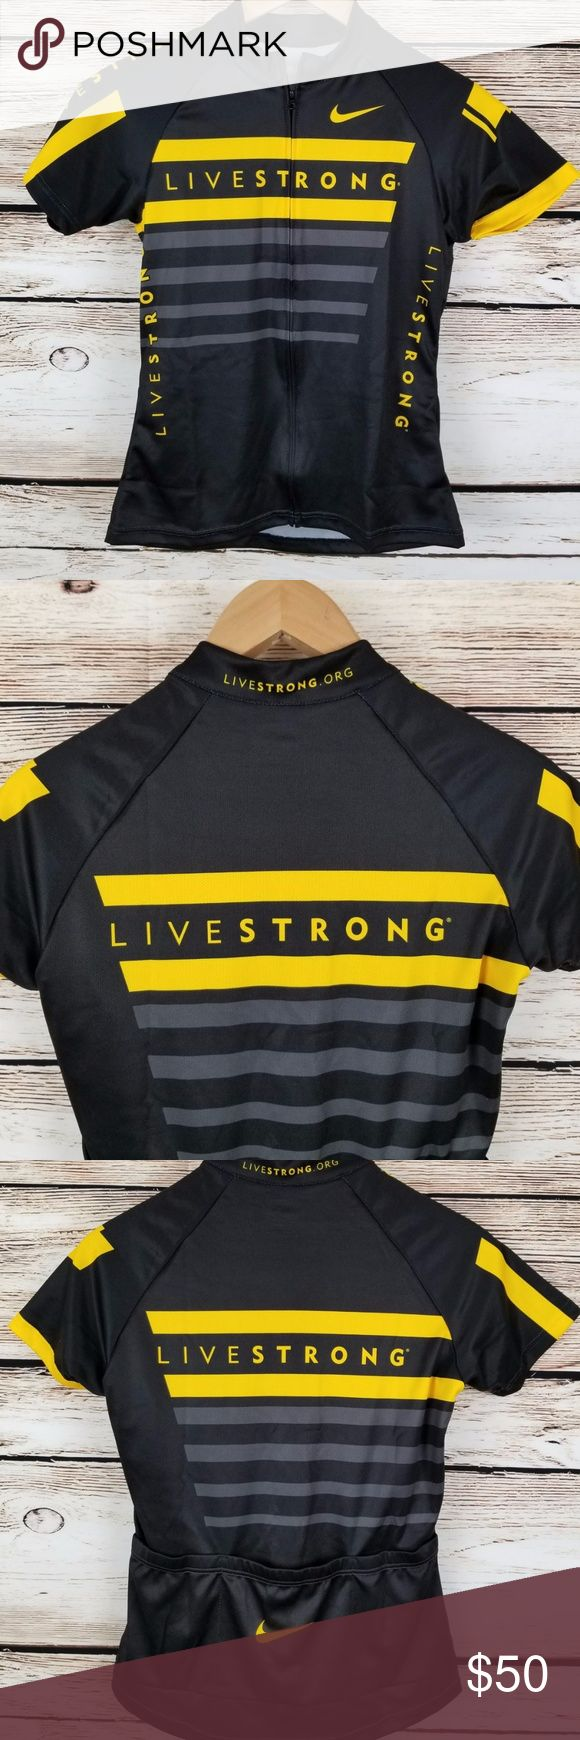 Nike Livestrong Womens Cycling Jersey Small Full Zip  Black & Yellow Swoosh  New with tags Nike Tops